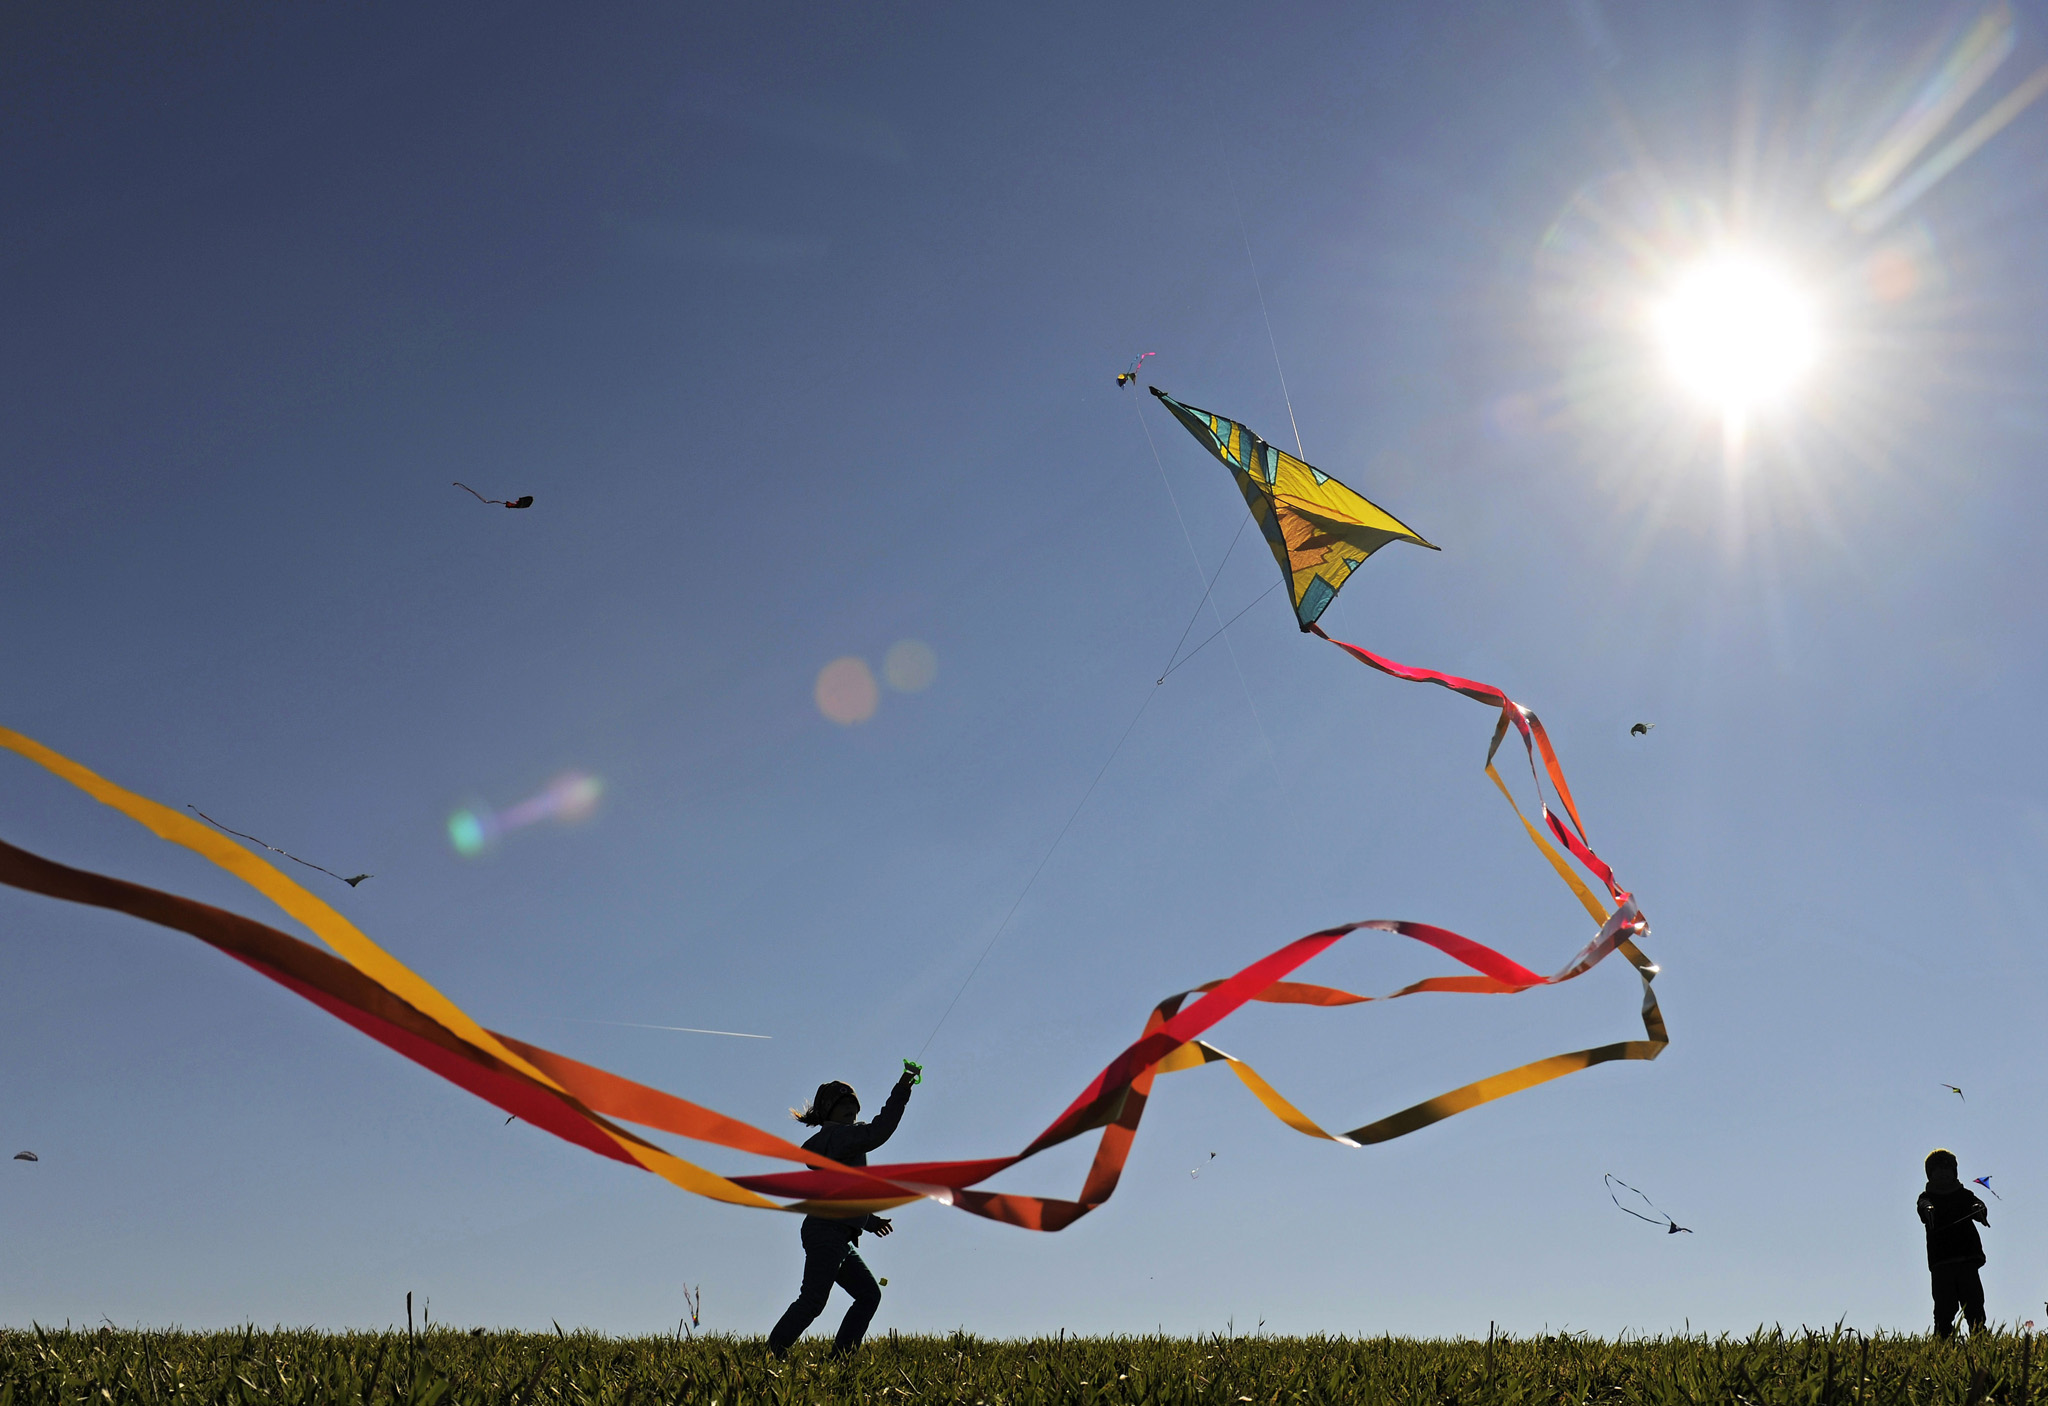 A child runs with its kite during bright sunshine near Chemnitz, eastern Germany, Thursday, Oct. 3, 2013. Meteorologists predict changeable weather for the upcoming days in Germany.